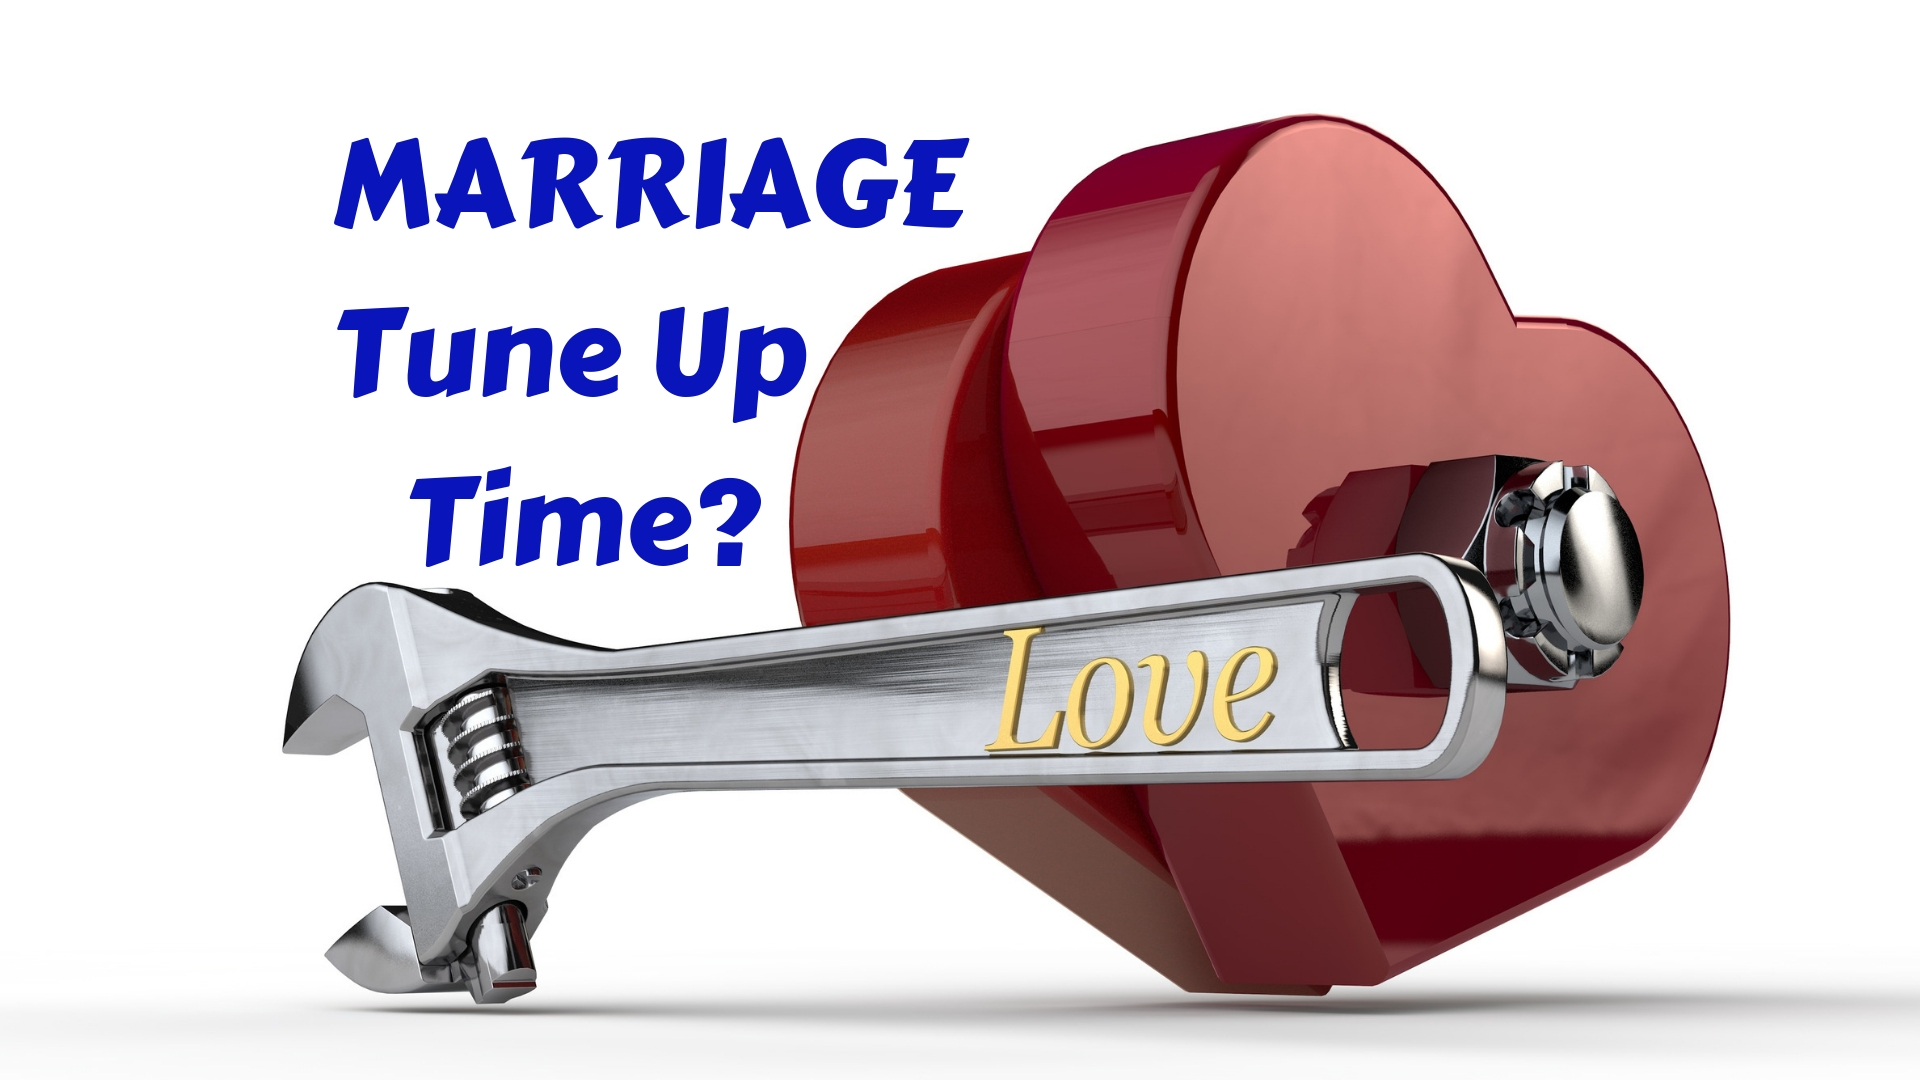 Marriage Tune UpTime? Adobe Stock - Canva